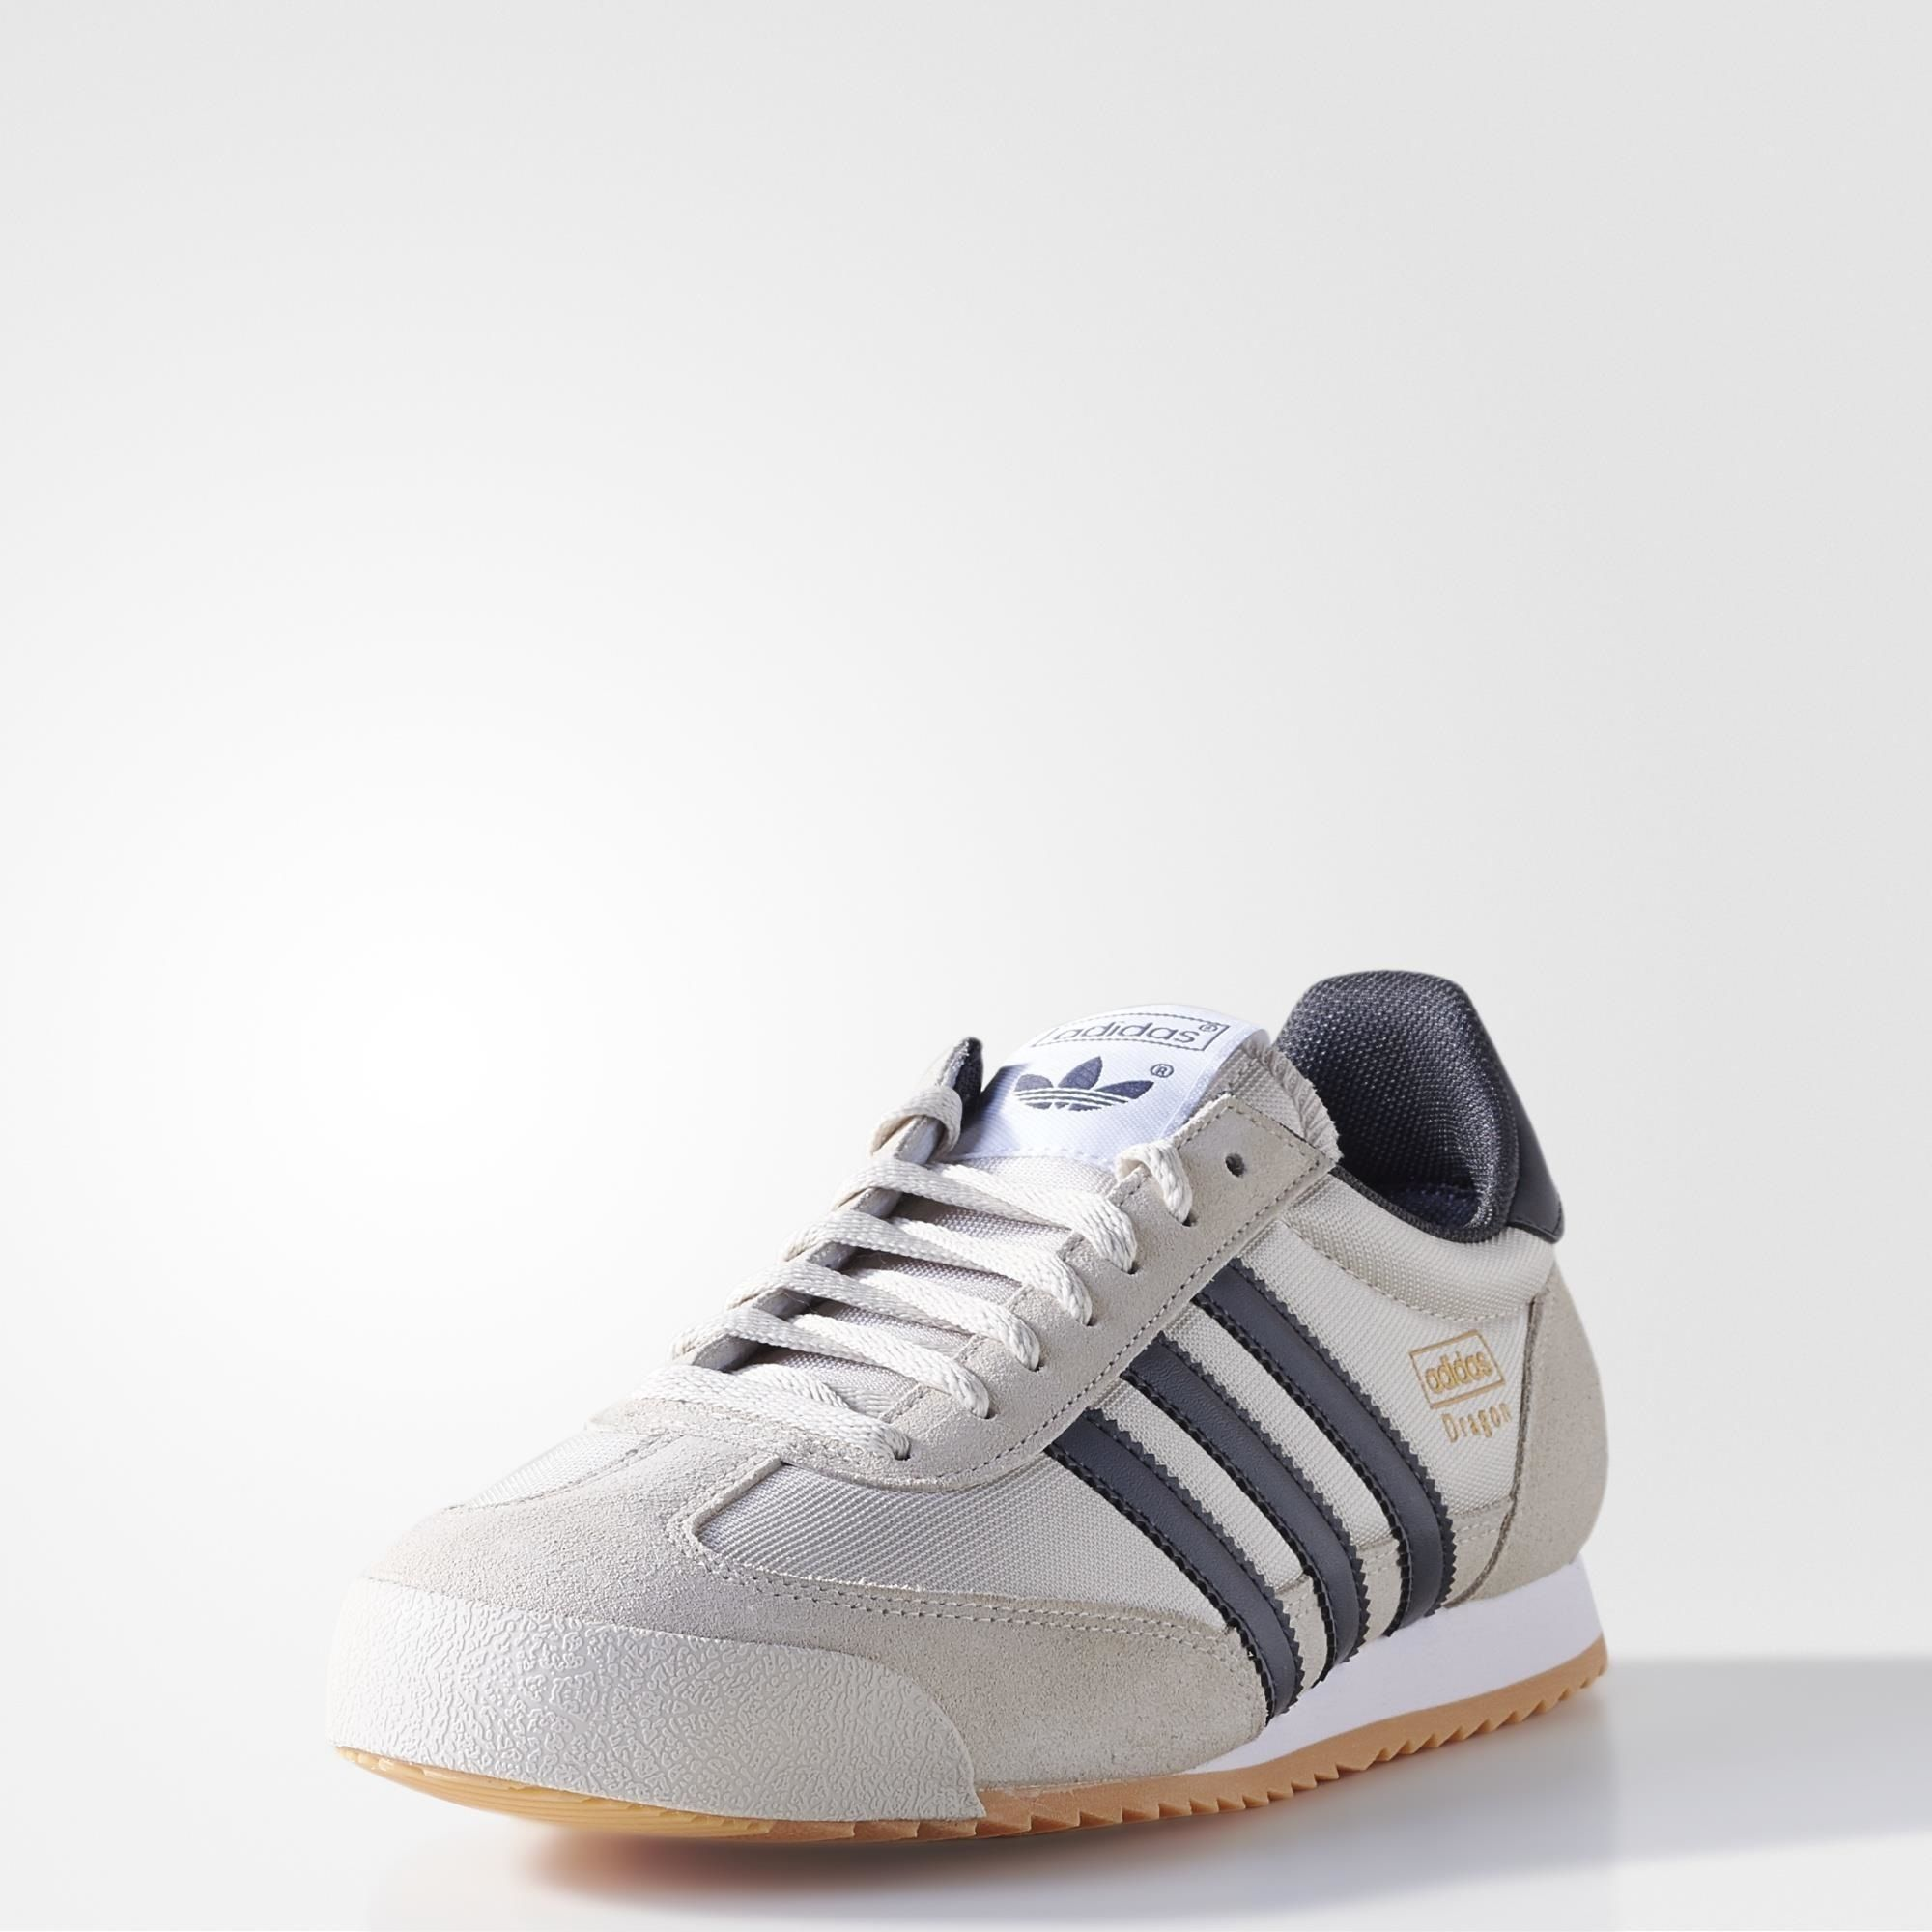 adidas tenis ropa